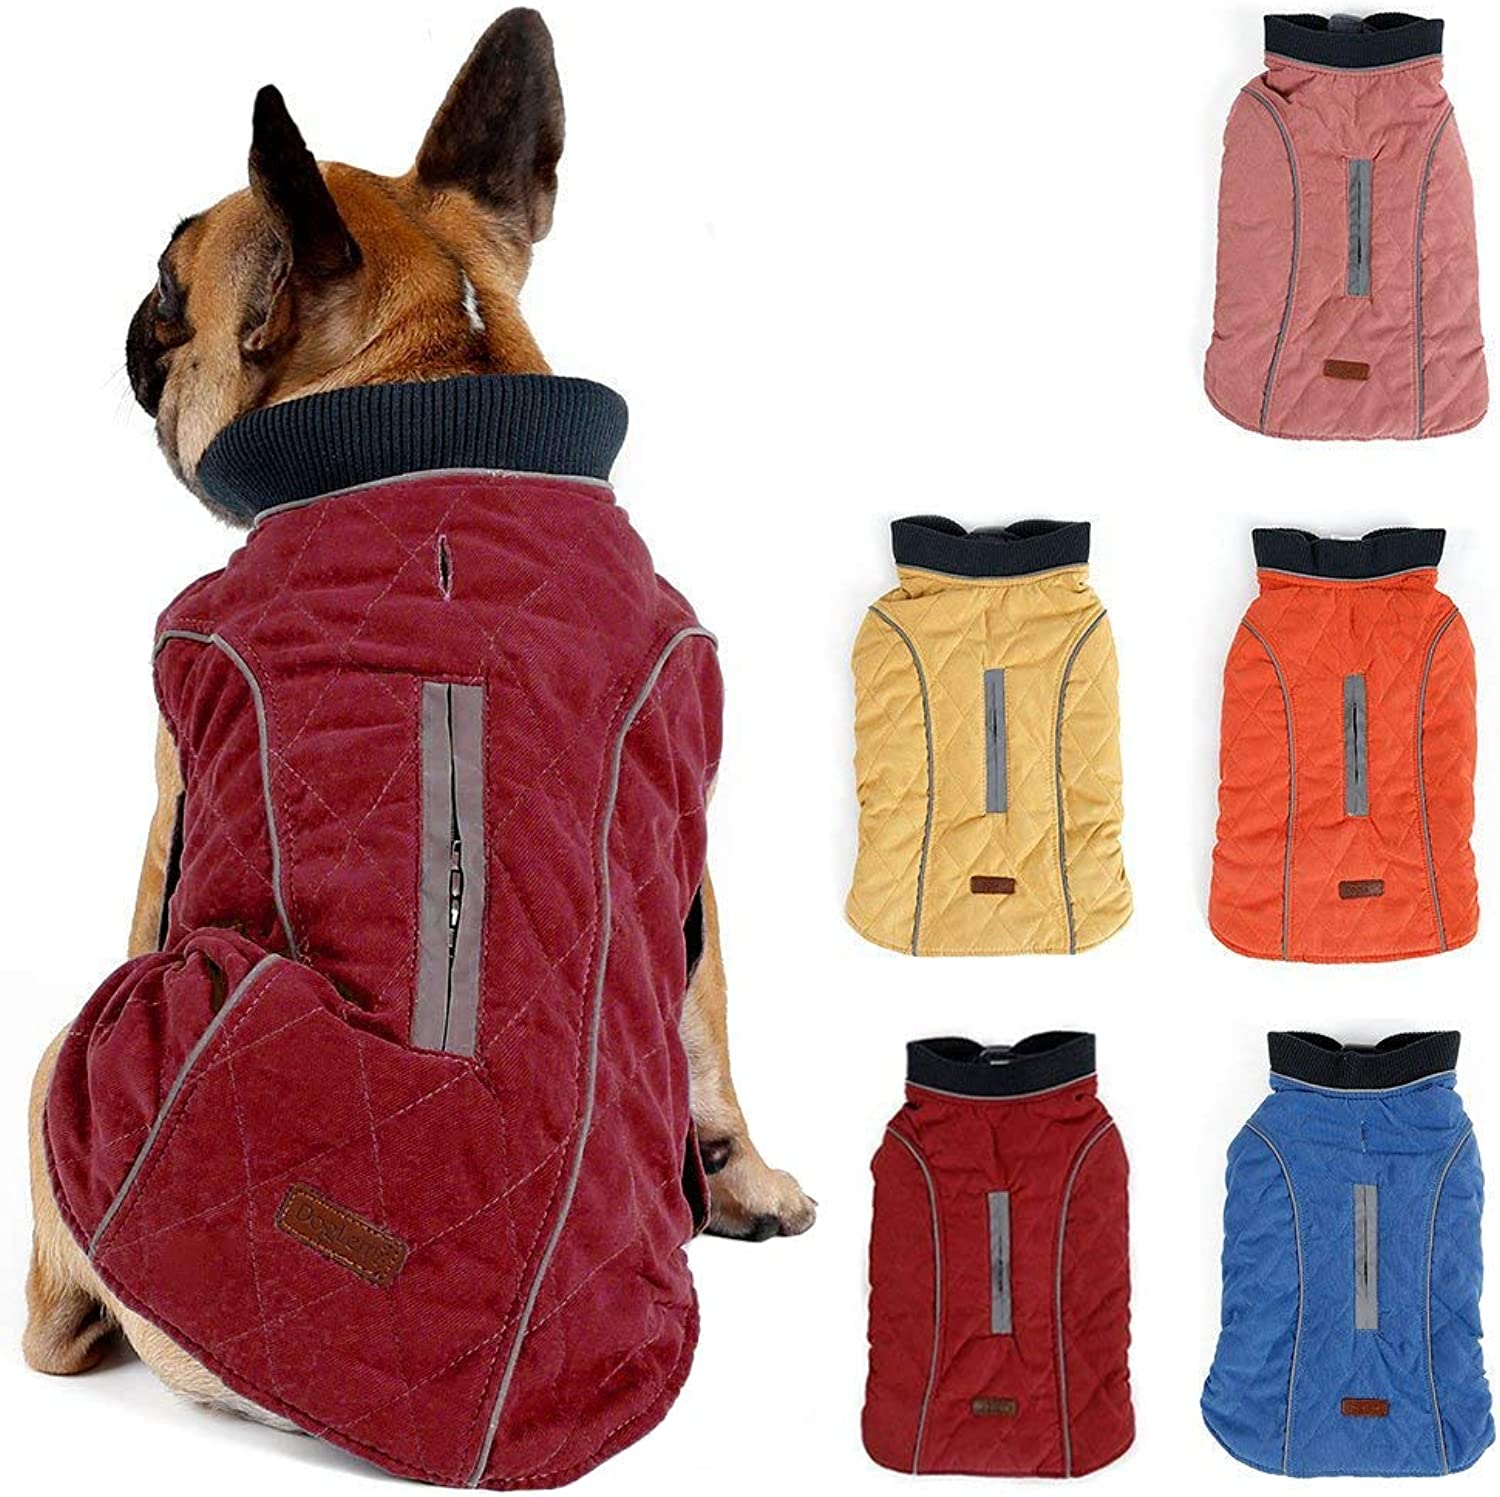 Cold Winter Dog Pet Coat Jacket Vest Warm Outfit Clothes for Small Medium Large Dogs Red XS